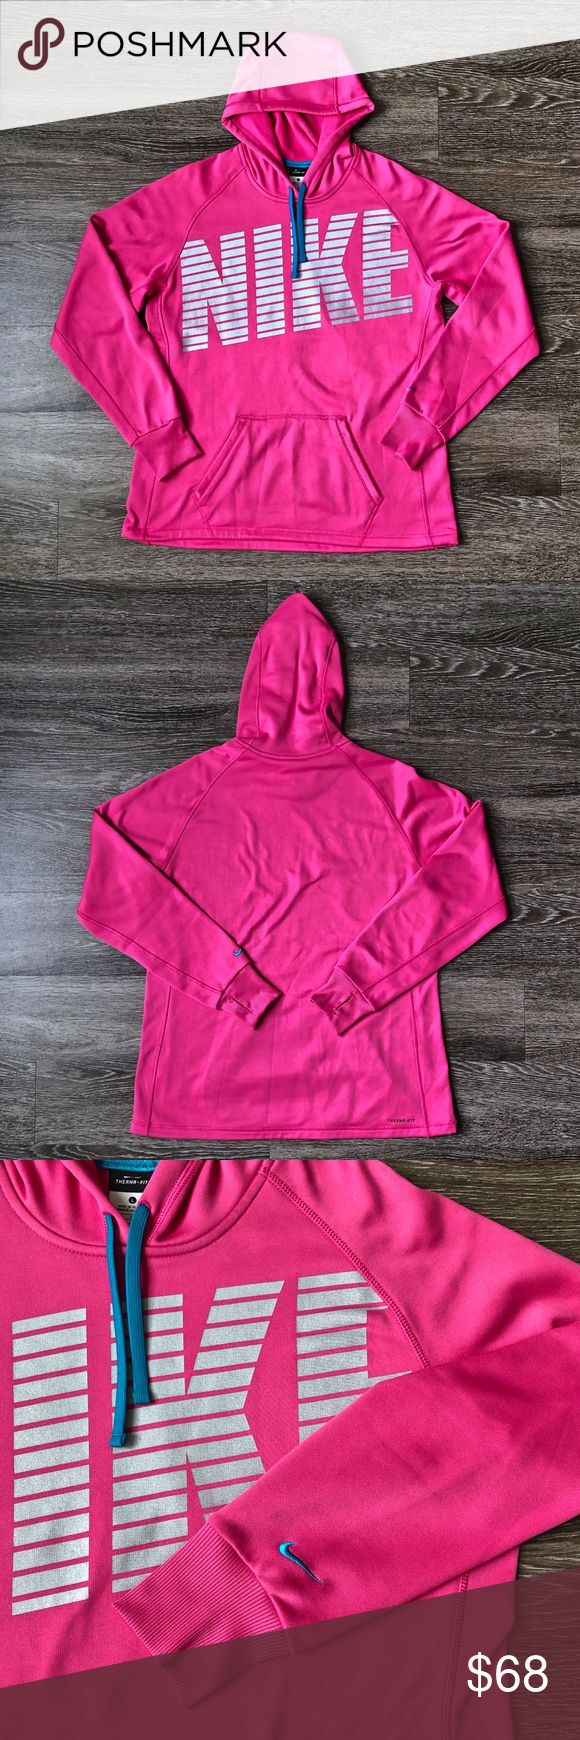 Nike Therma Fit Hot Pink Pullover Hoodie Pullover Hoodie Pullover Hoodies [ 1740 x 580 Pixel ]